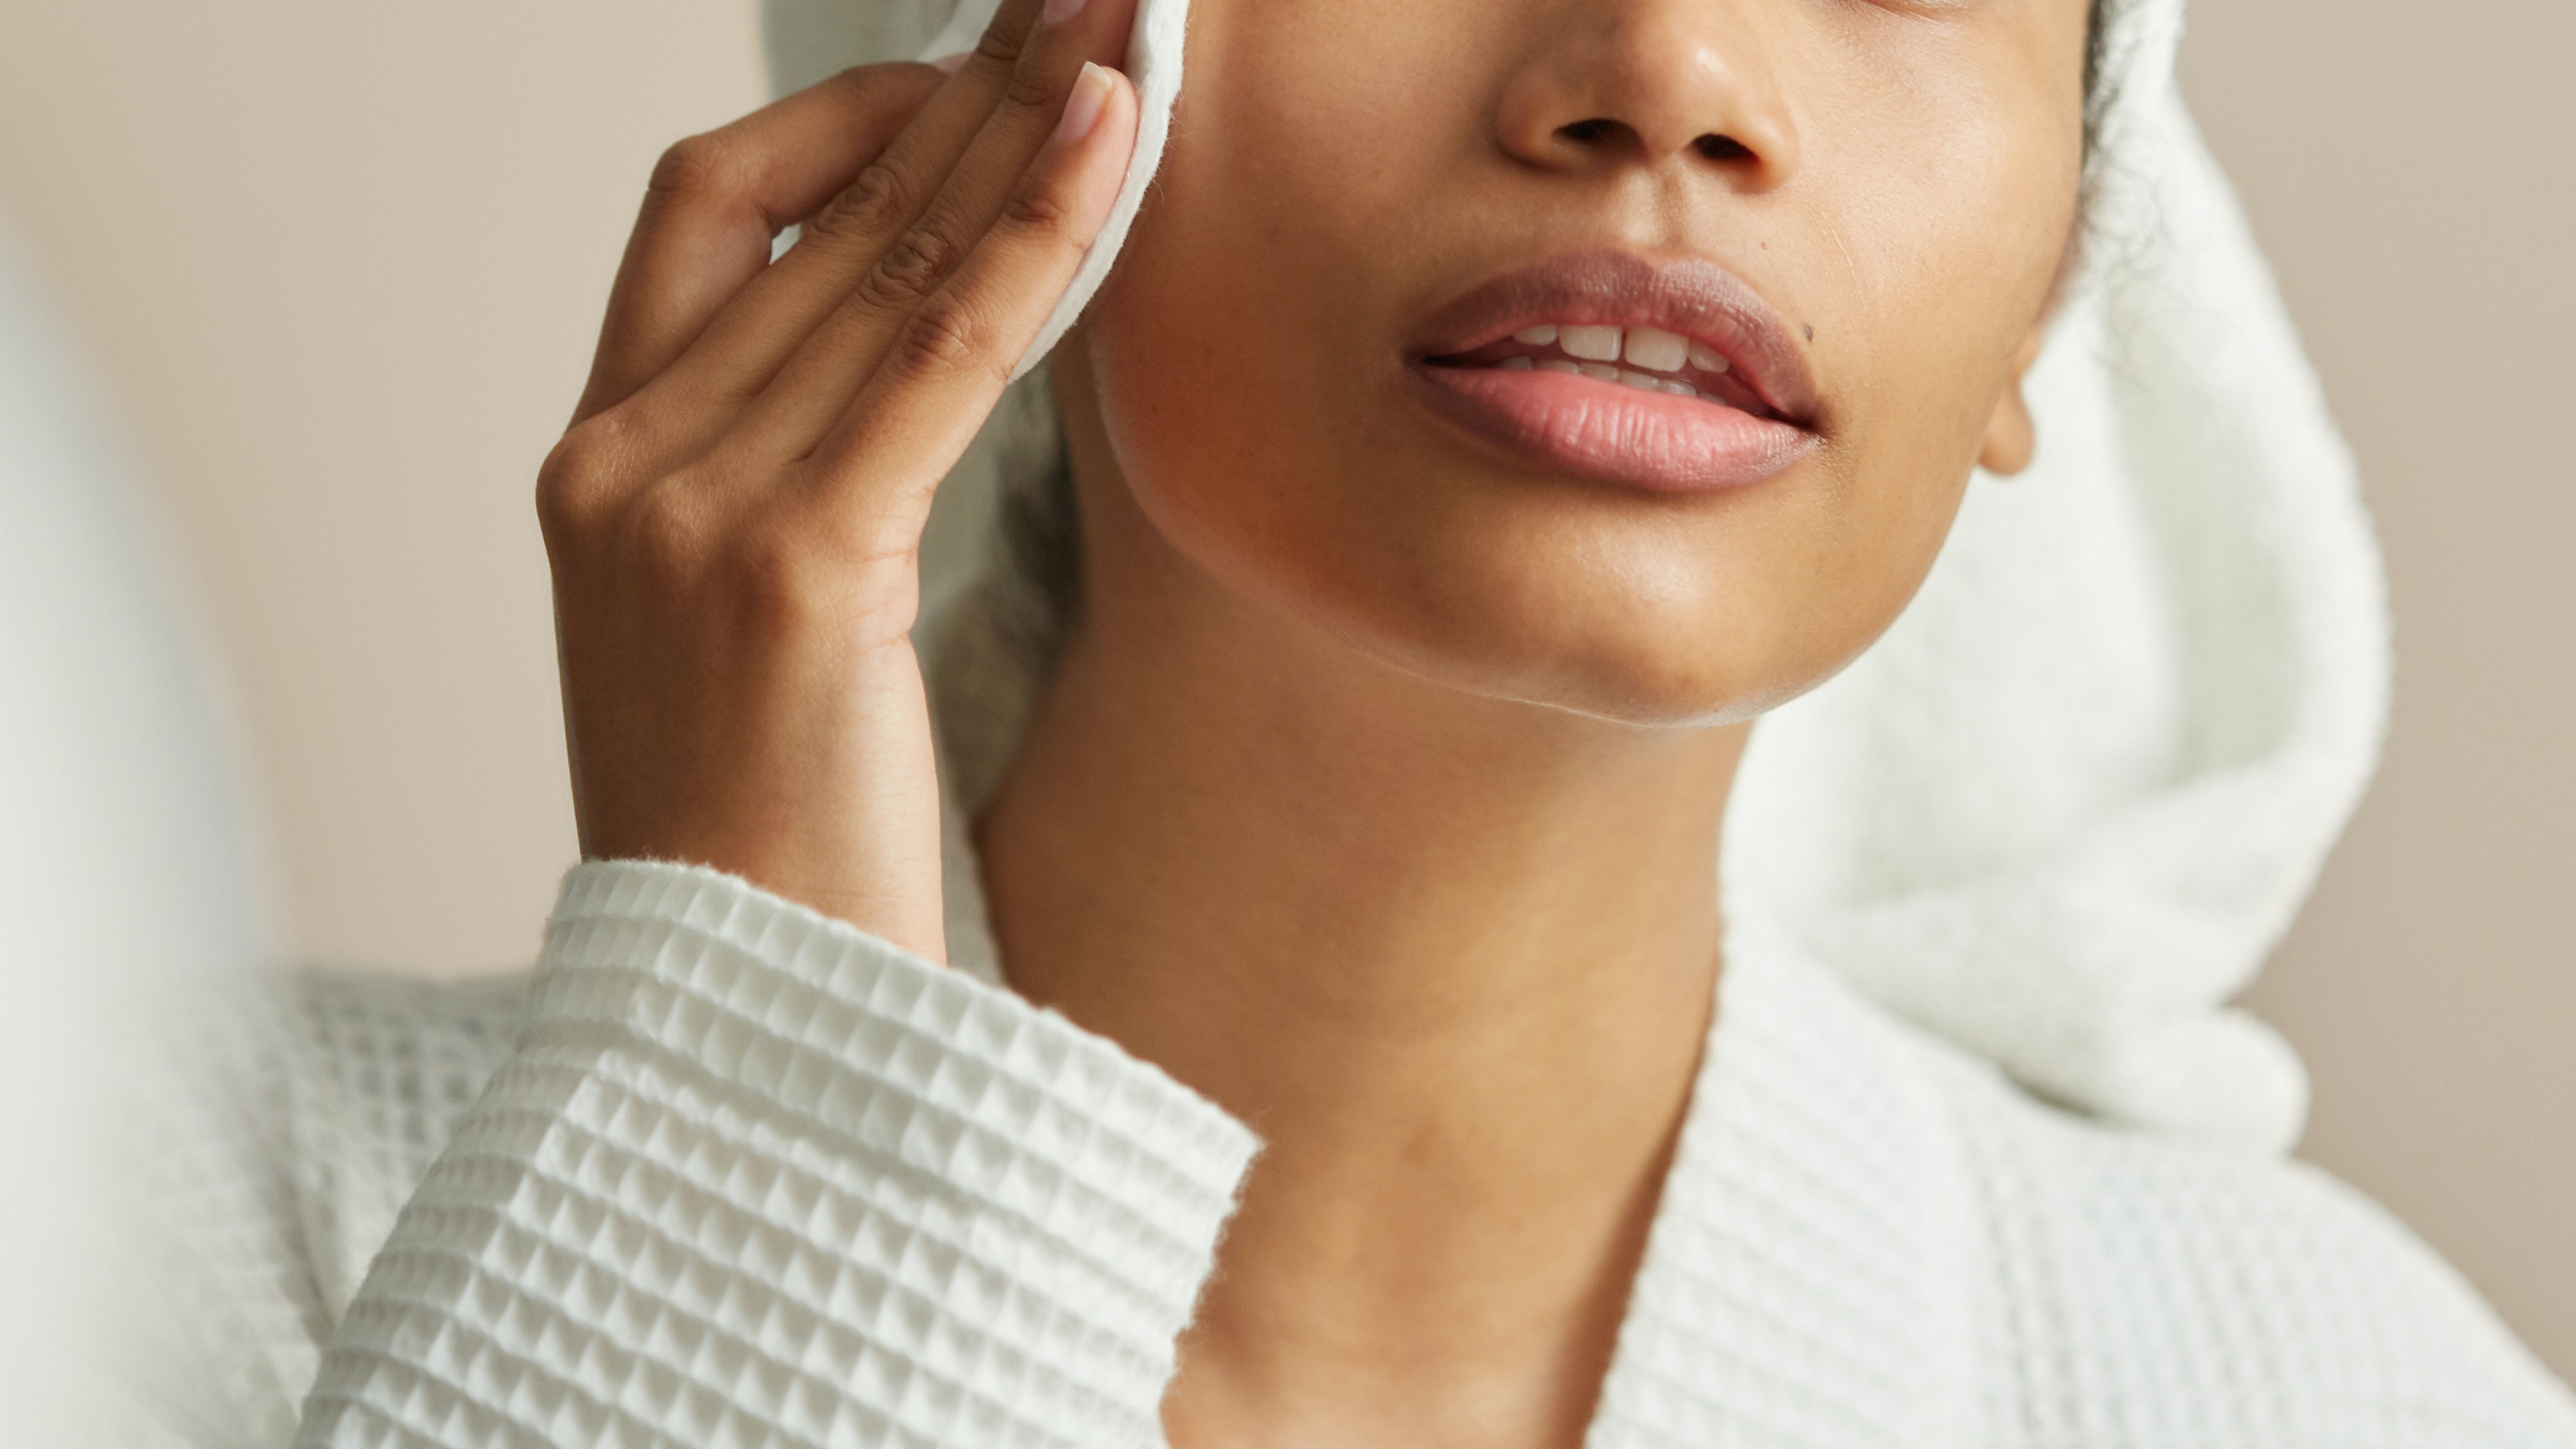 woman applying Toner and Essence in face care skincare